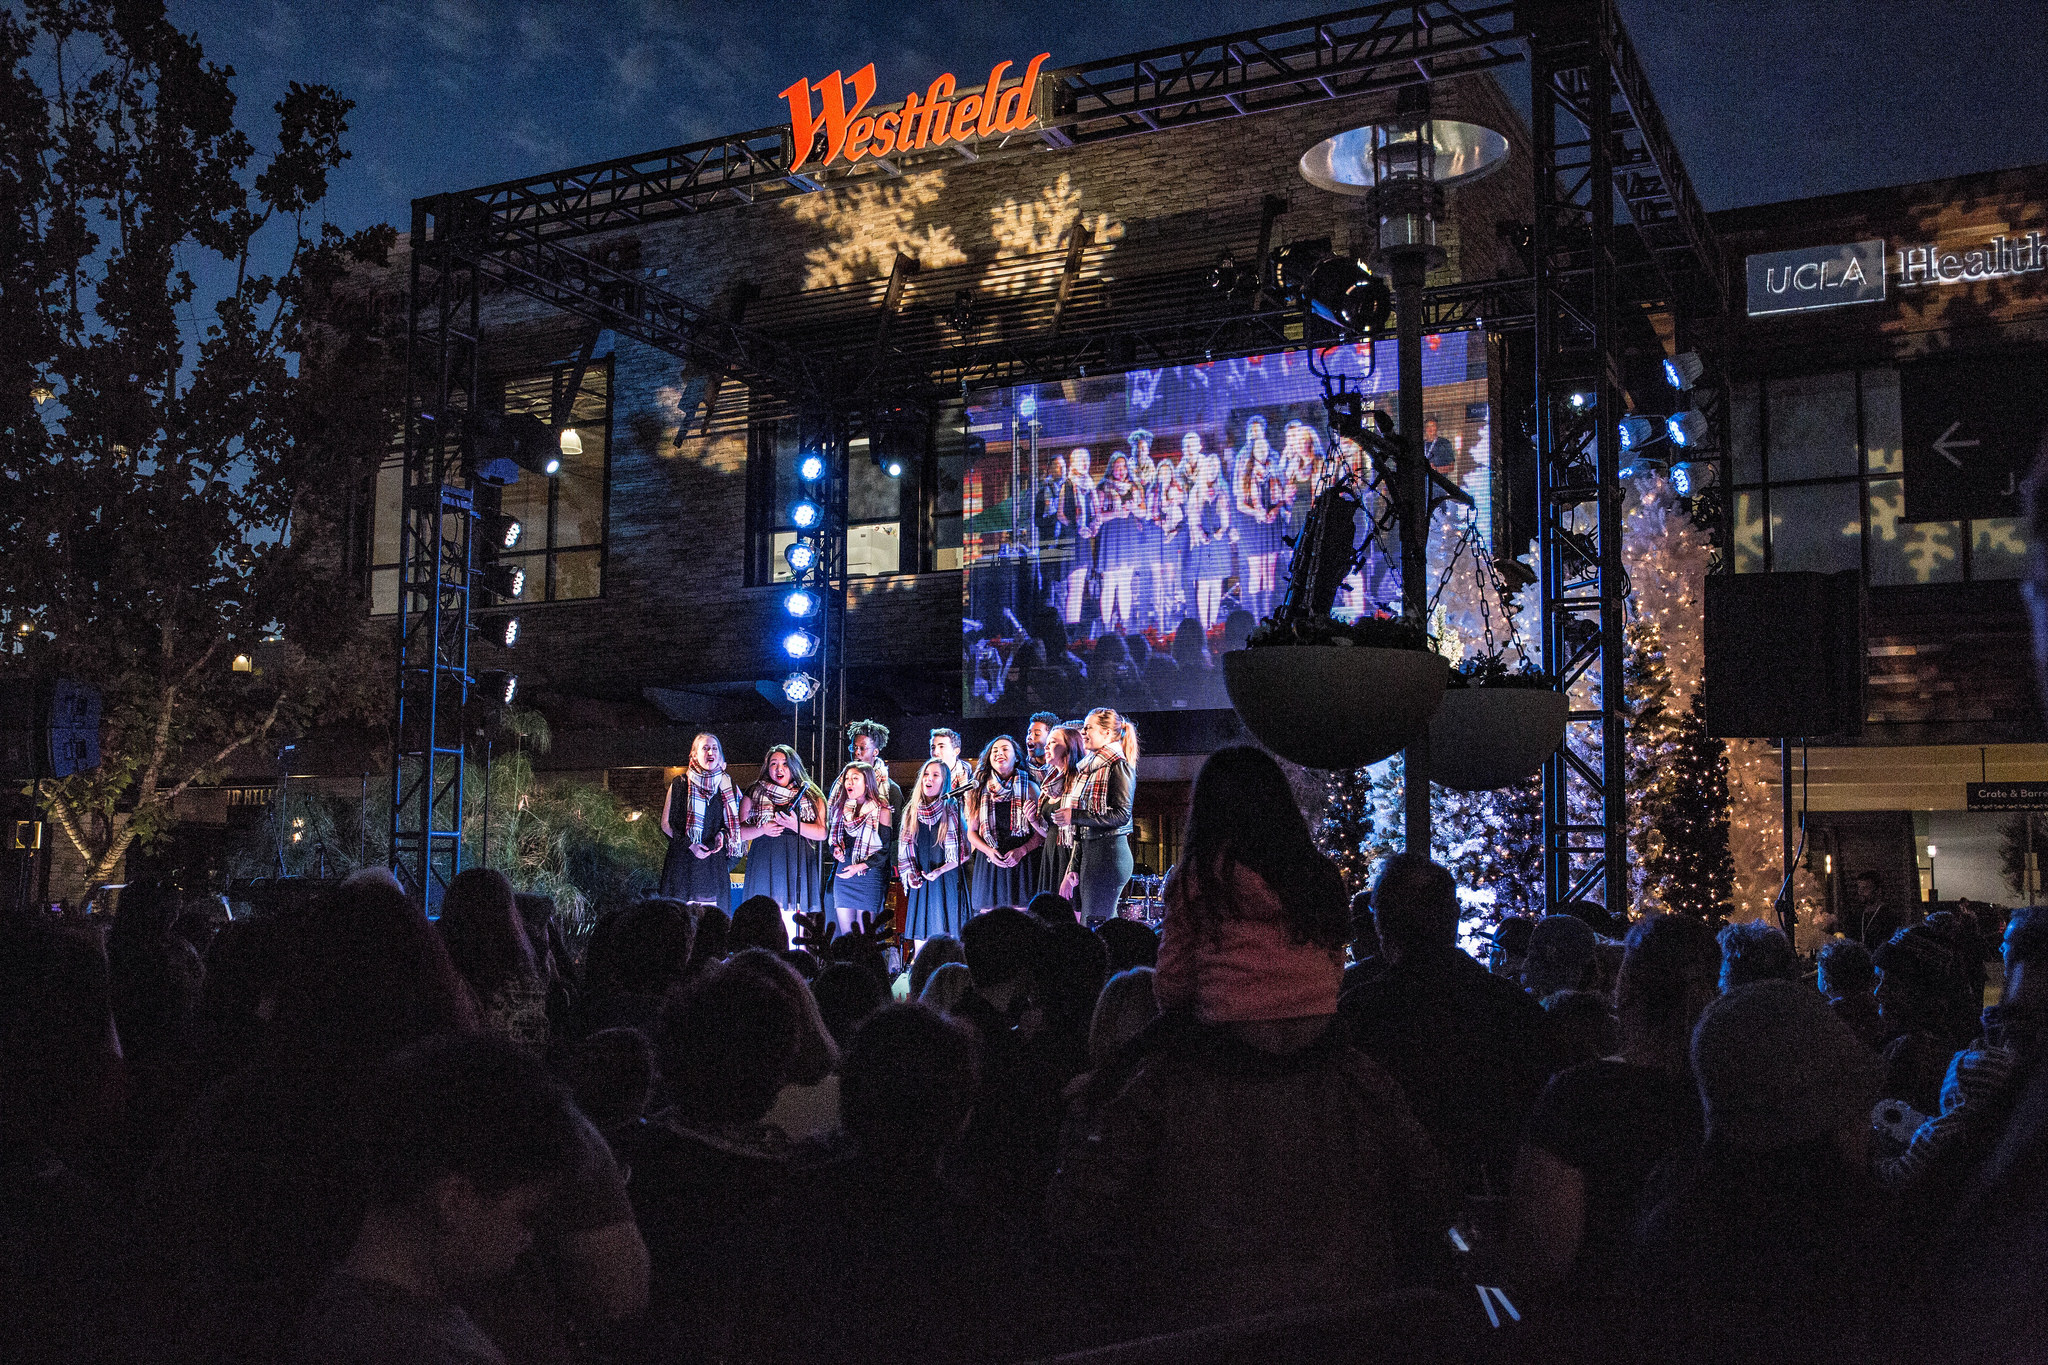 Westfield Topanga & The Village Tree Lighting Ceremony